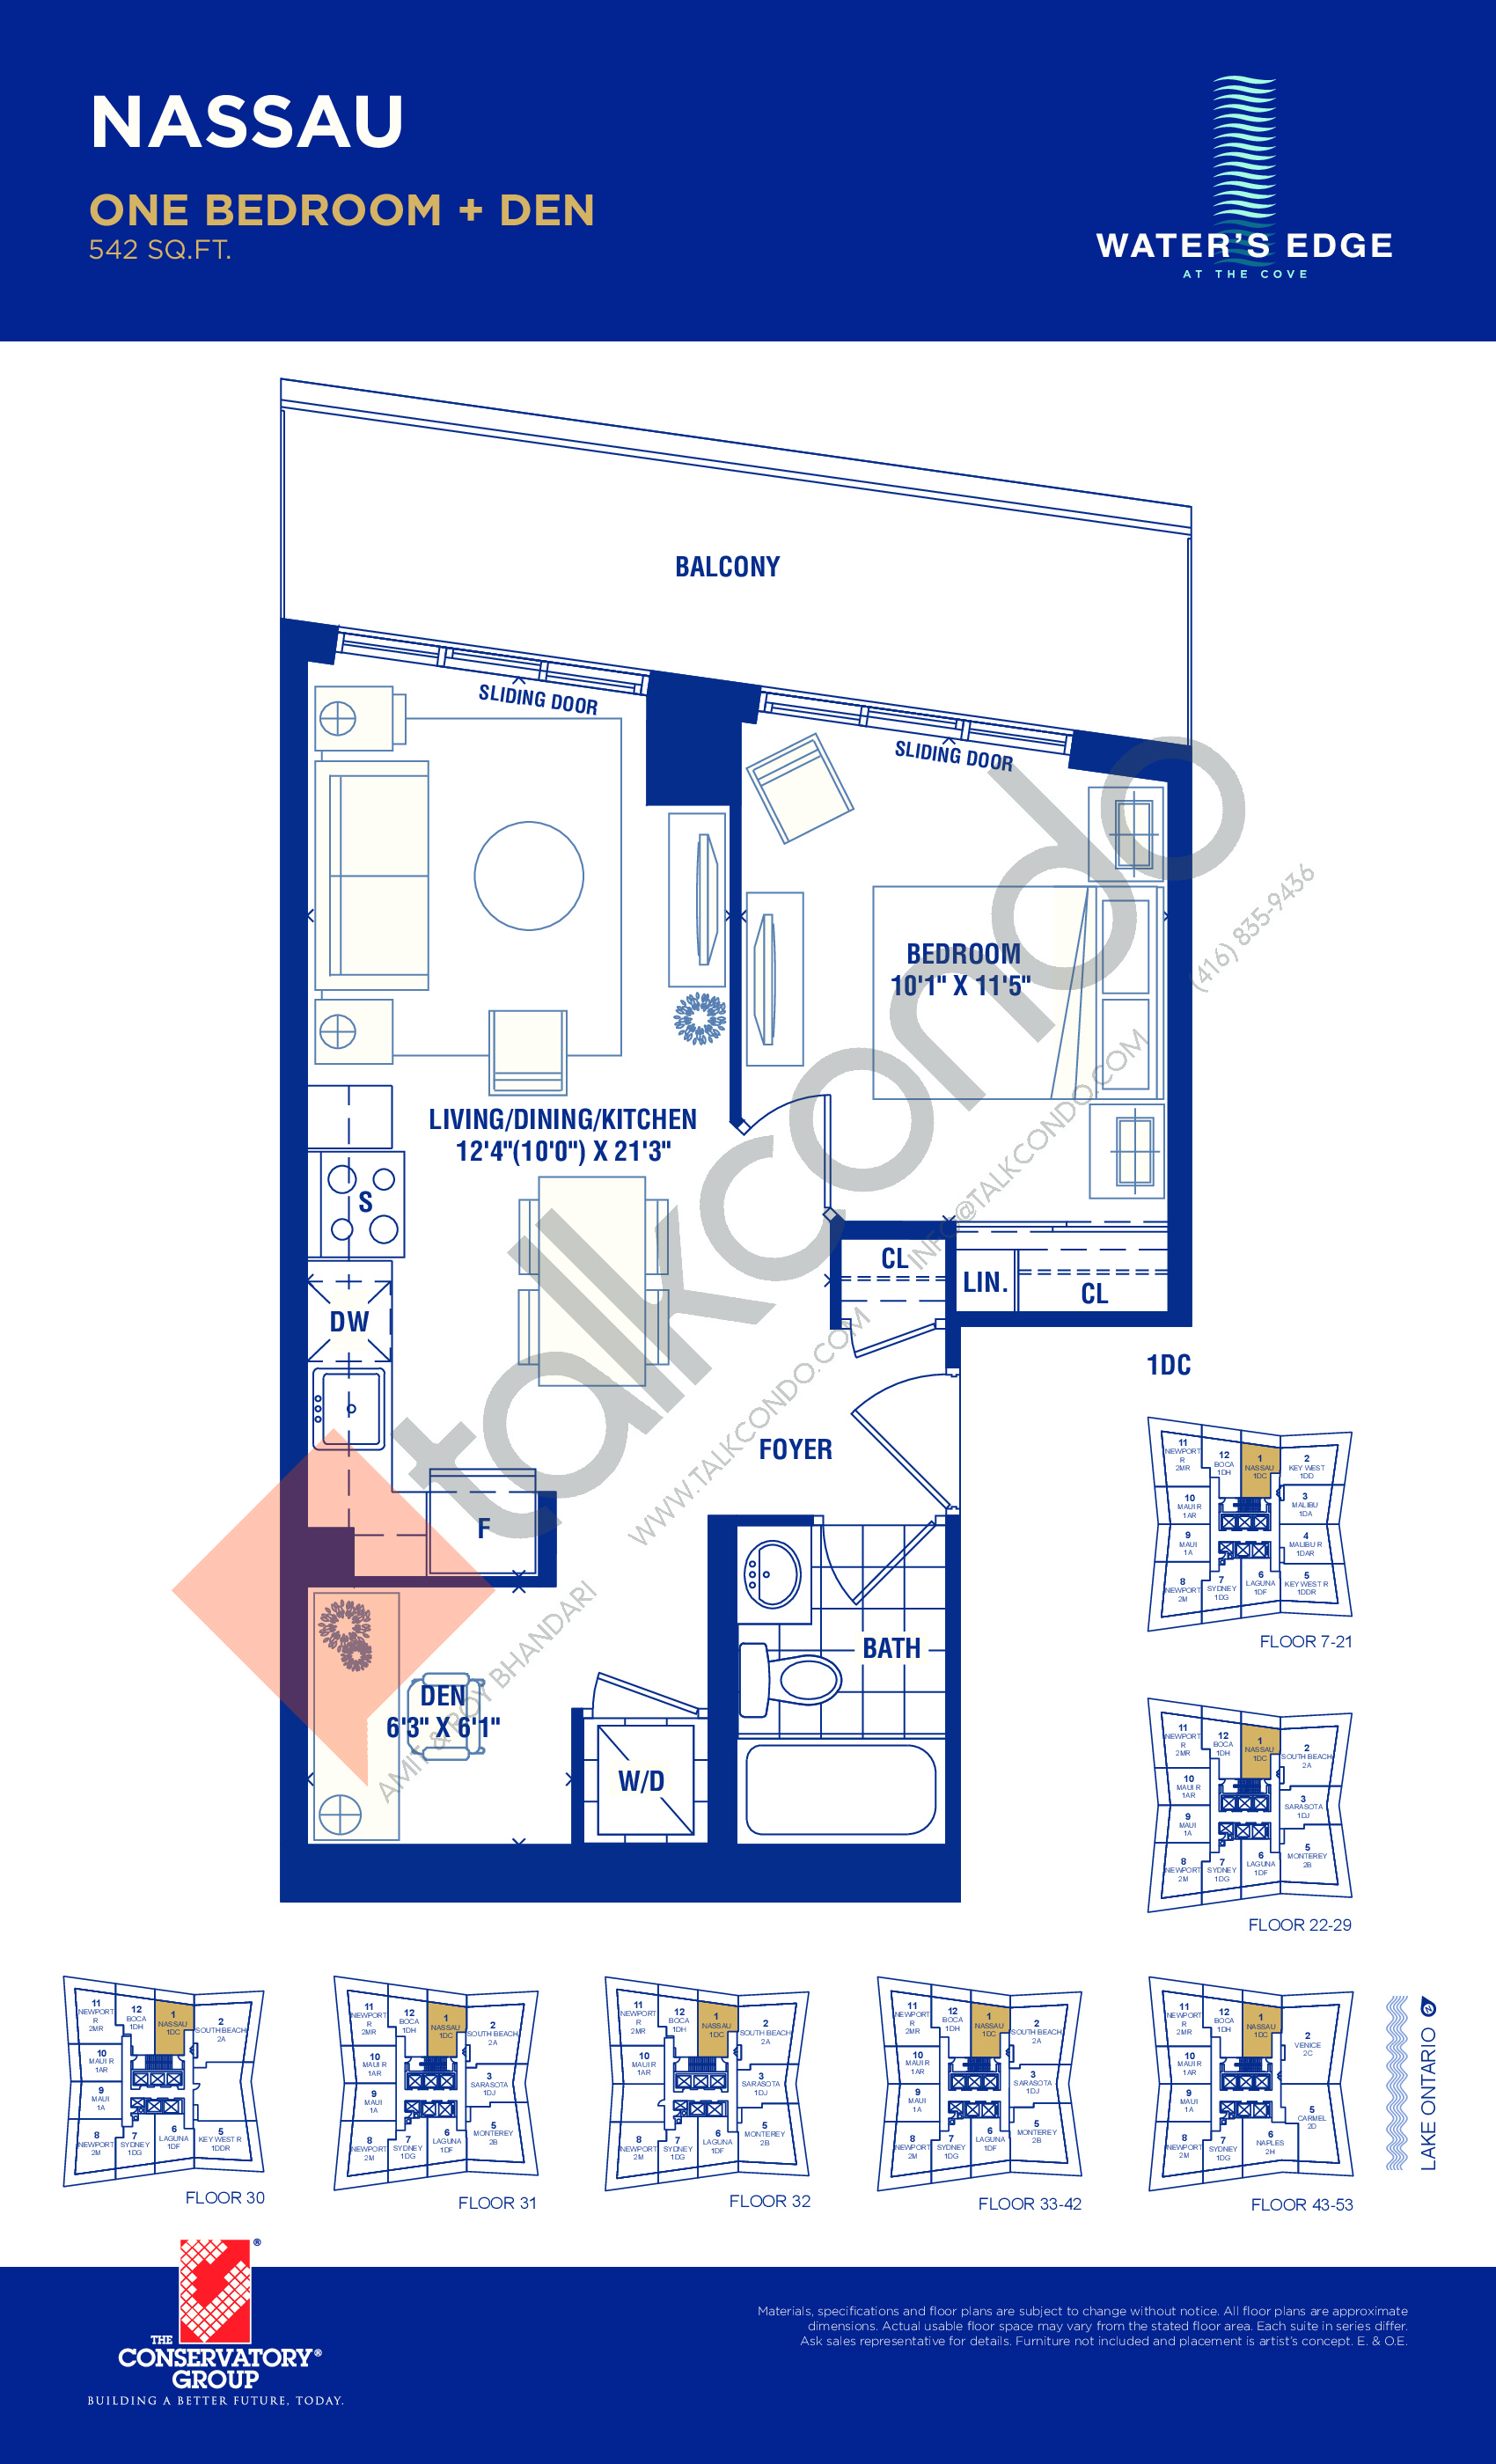 Nassau Floor Plan at Water's Edge at the Cove Condos - 542 sq.ft